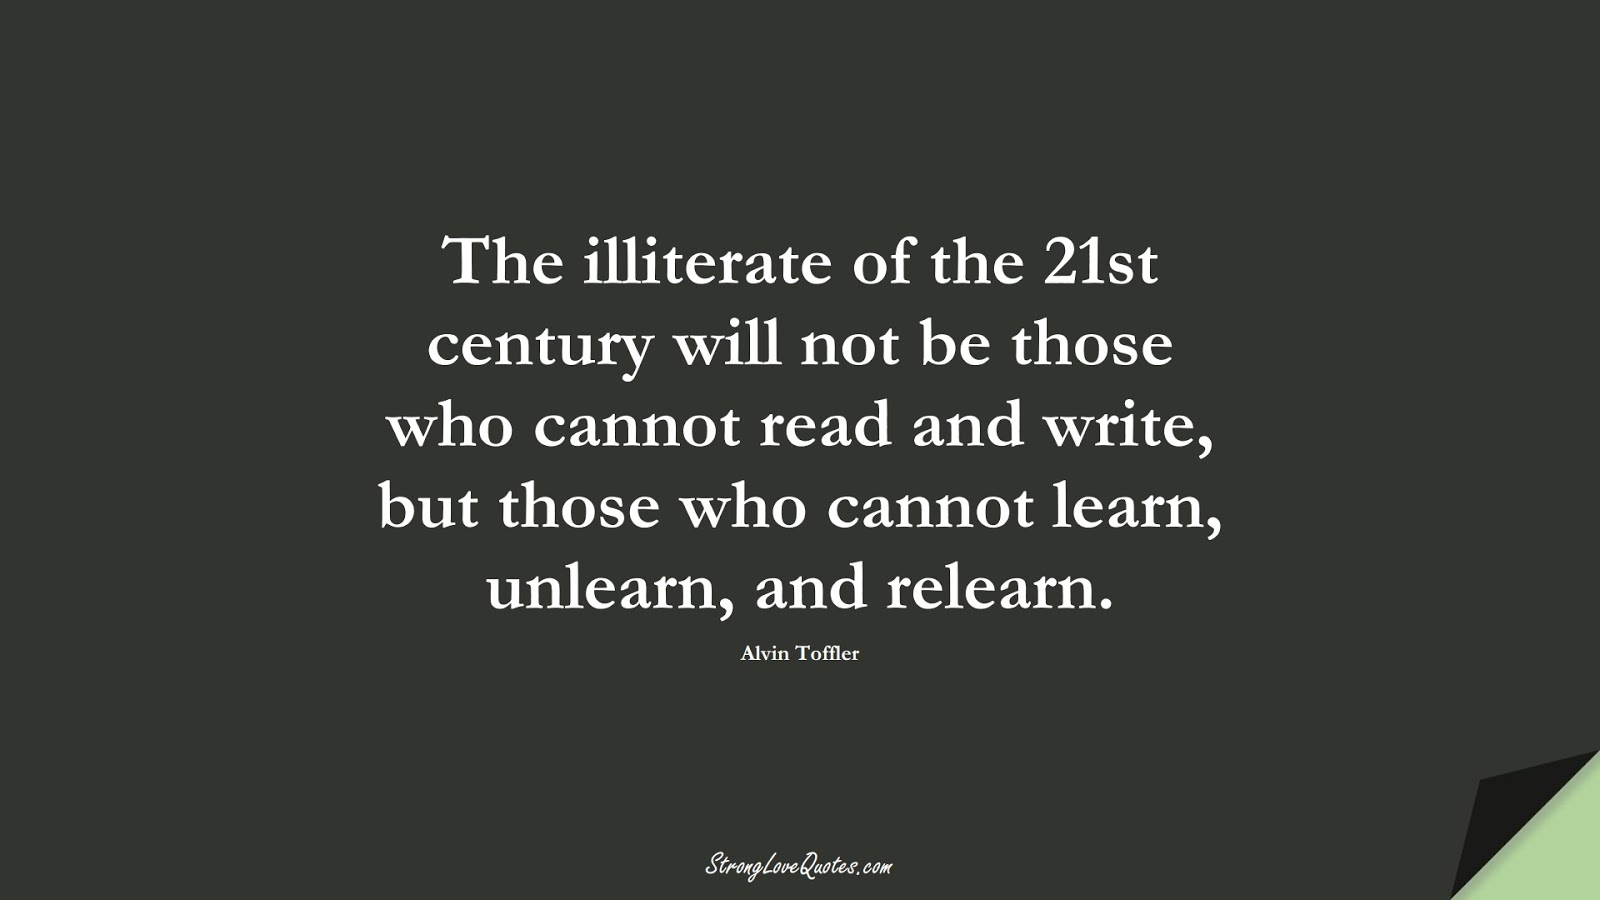 The illiterate of the 21st century will not be those who cannot read and write, but those who cannot learn, unlearn, and relearn. (Alvin Toffler);  #EducationQuotes